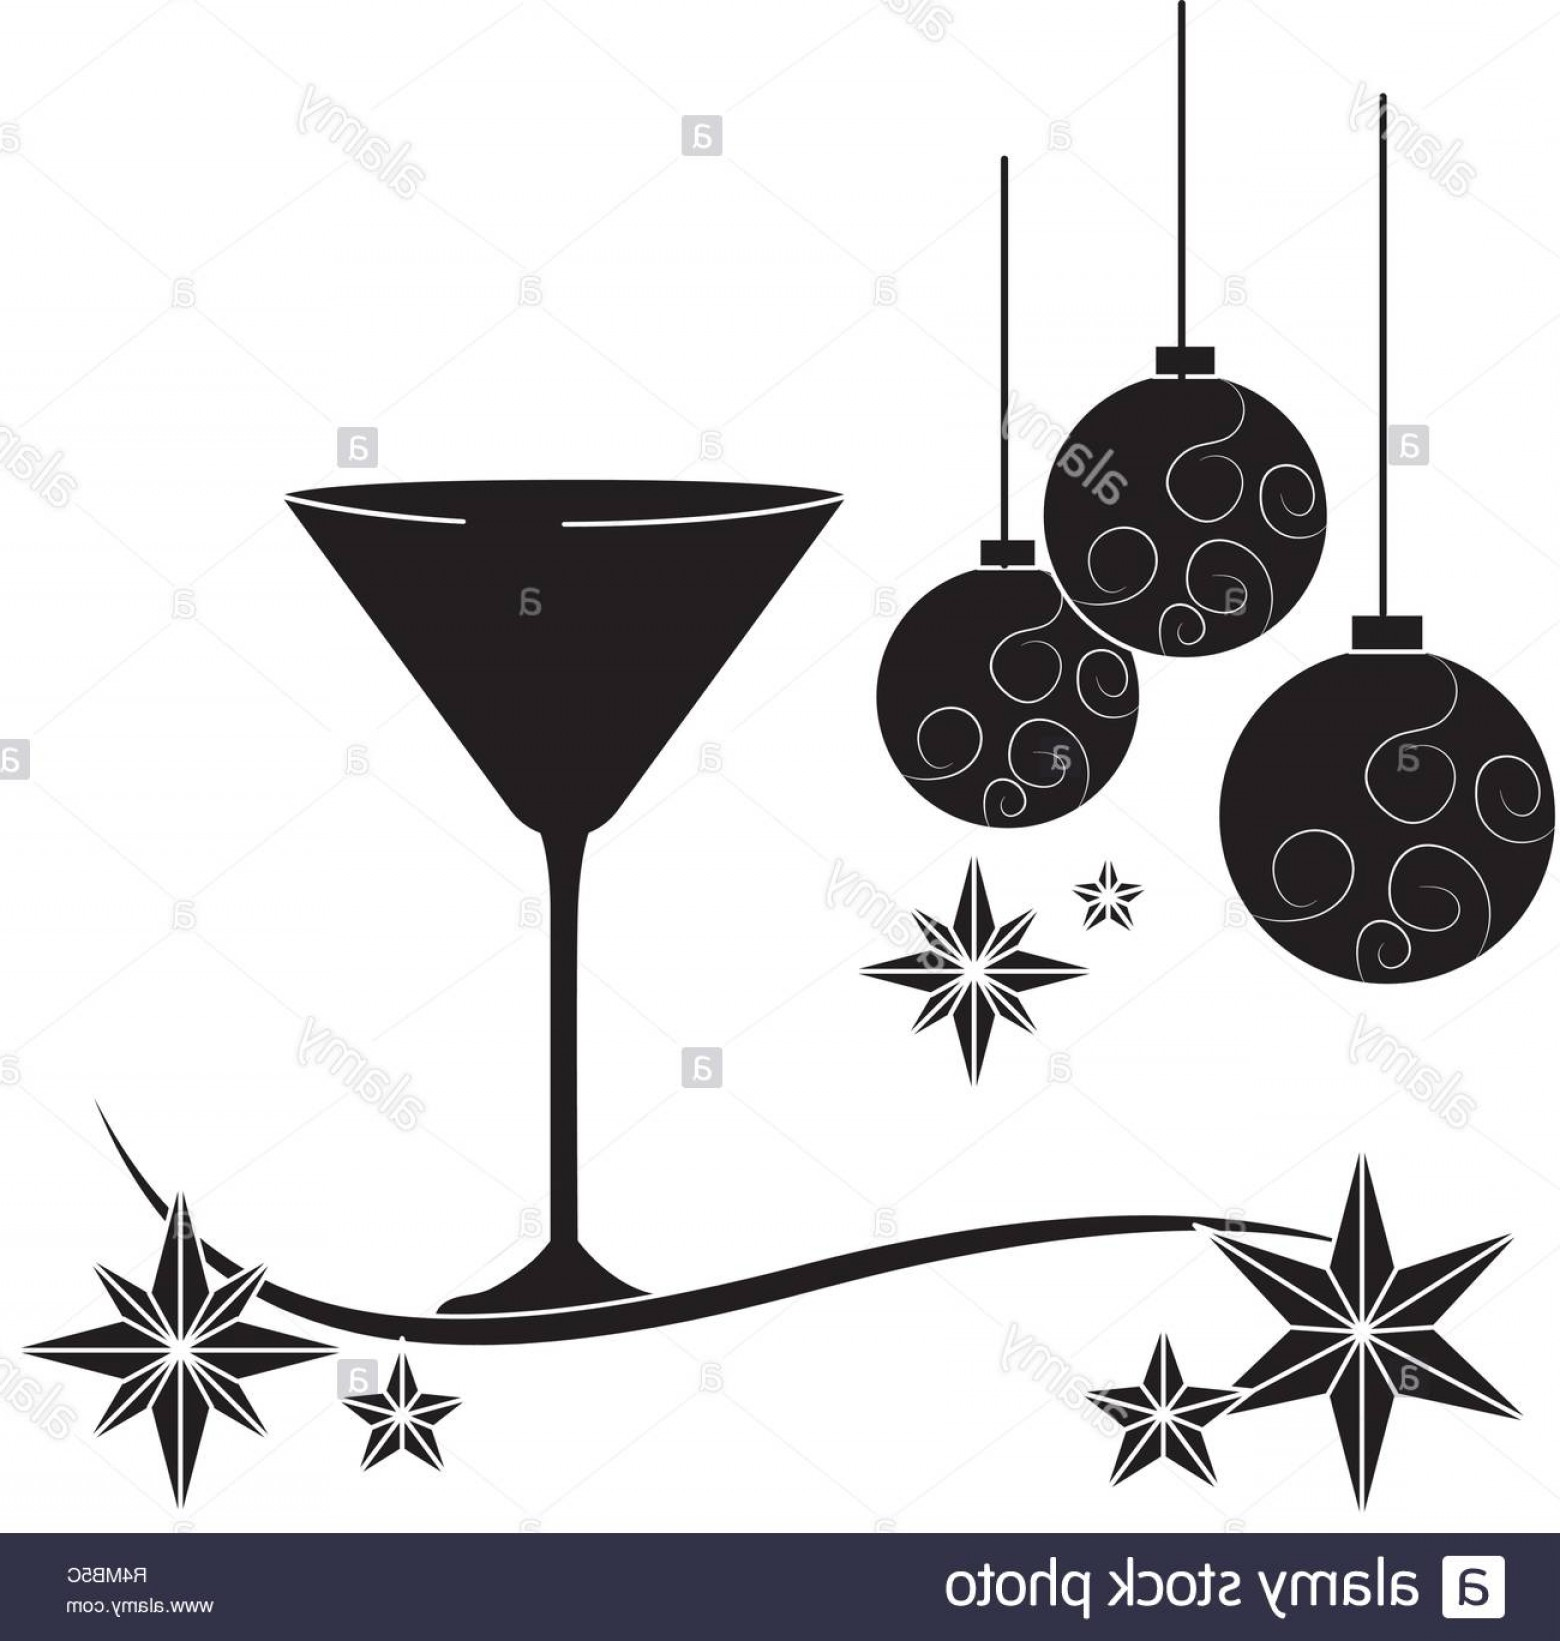 Cocktail Glasses Vector Art Decor: Luxury And Elegant Champagne Glass With Christmas Decorations Cartoon Vector Illustration Graphic Design Image